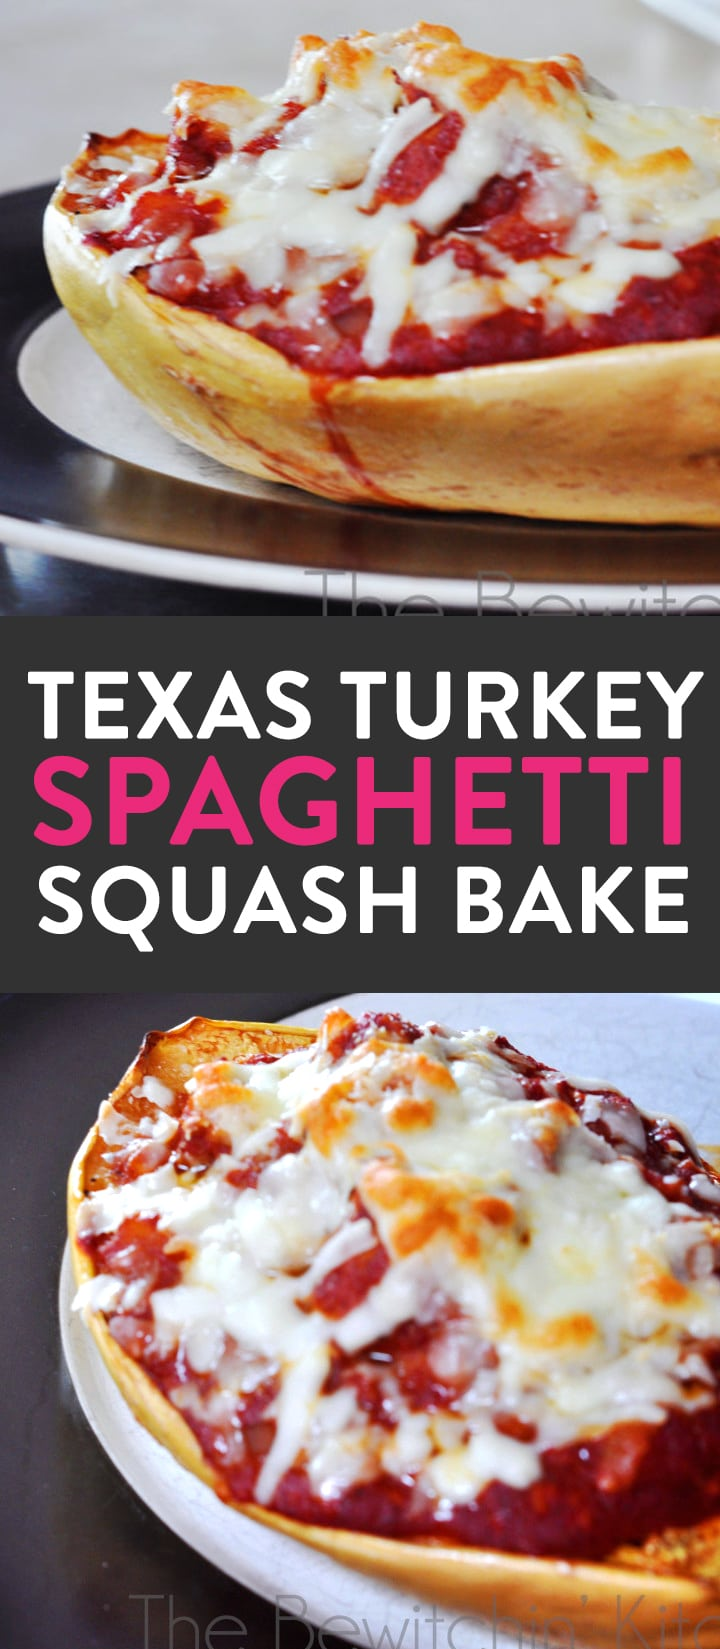 Texas Turkey Spaghetti Squash Bake | The Bewitchin' Kitchen